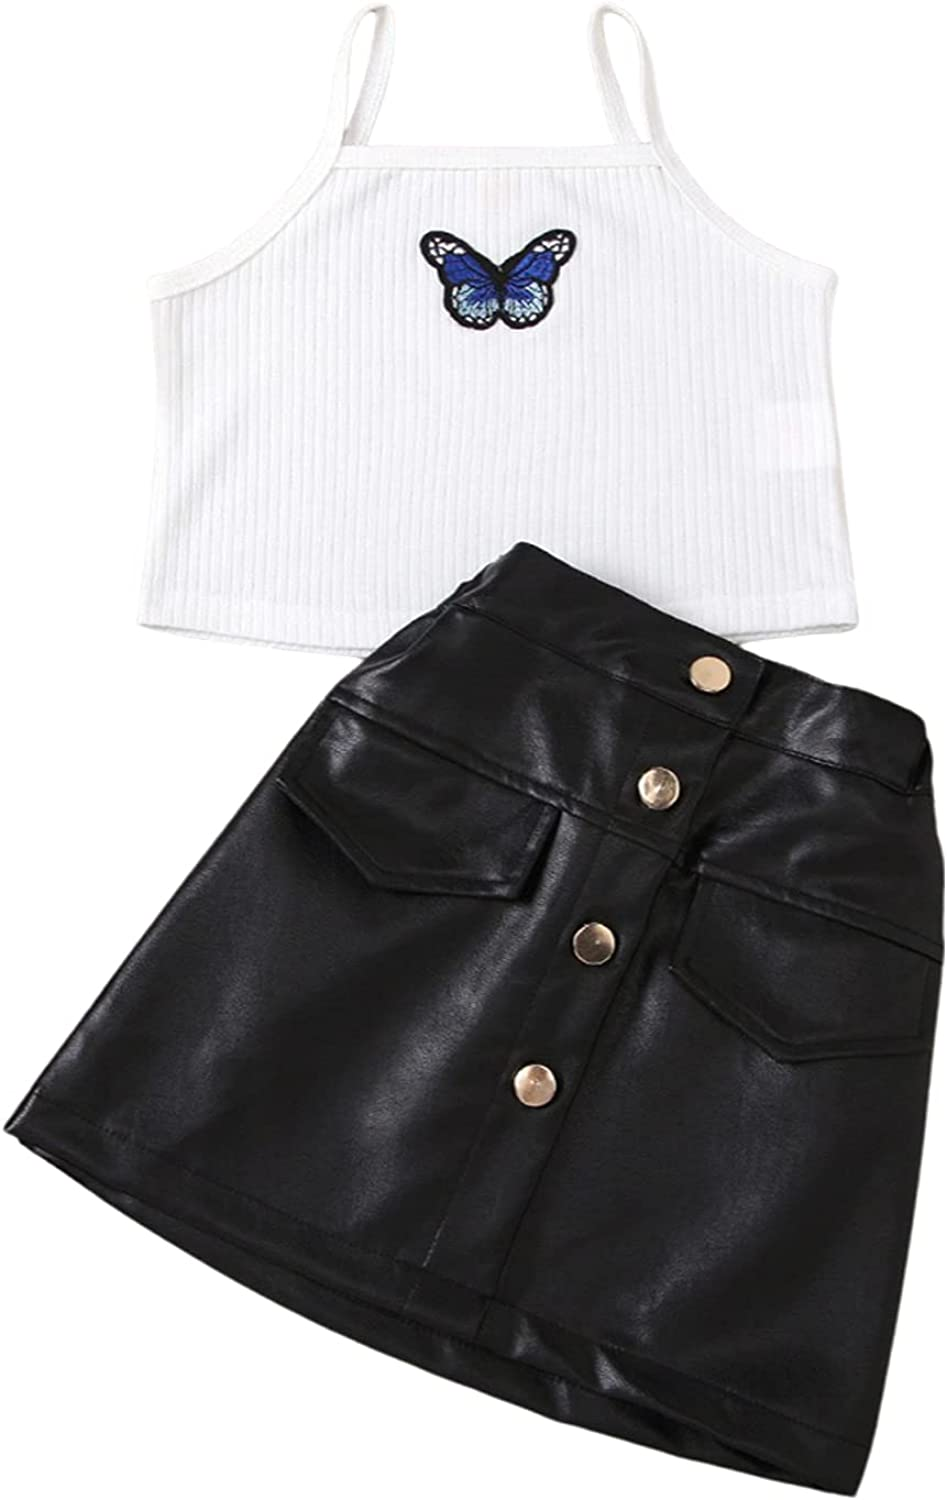 Toddler Baby Girls Free shipping anywhere in the nation Leather Skirt Shirt Outfits Sweater To Ribbed Max 63% OFF